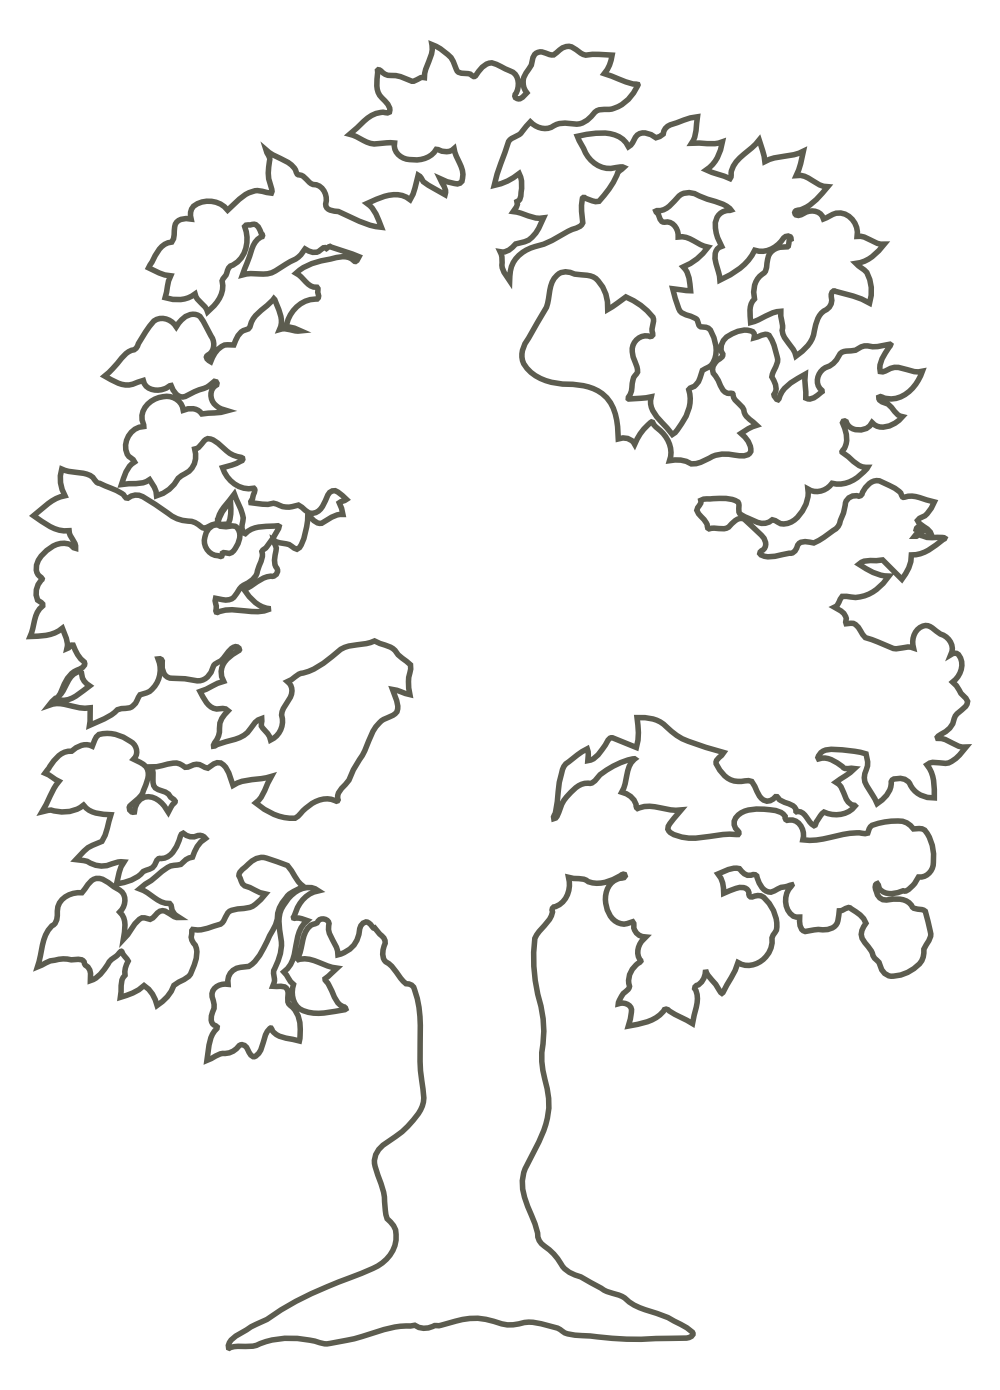 Tree stencil clipart vector black and white download OnlineLabels Clip Art - Simple Flowering Tree Outline vector black and white download